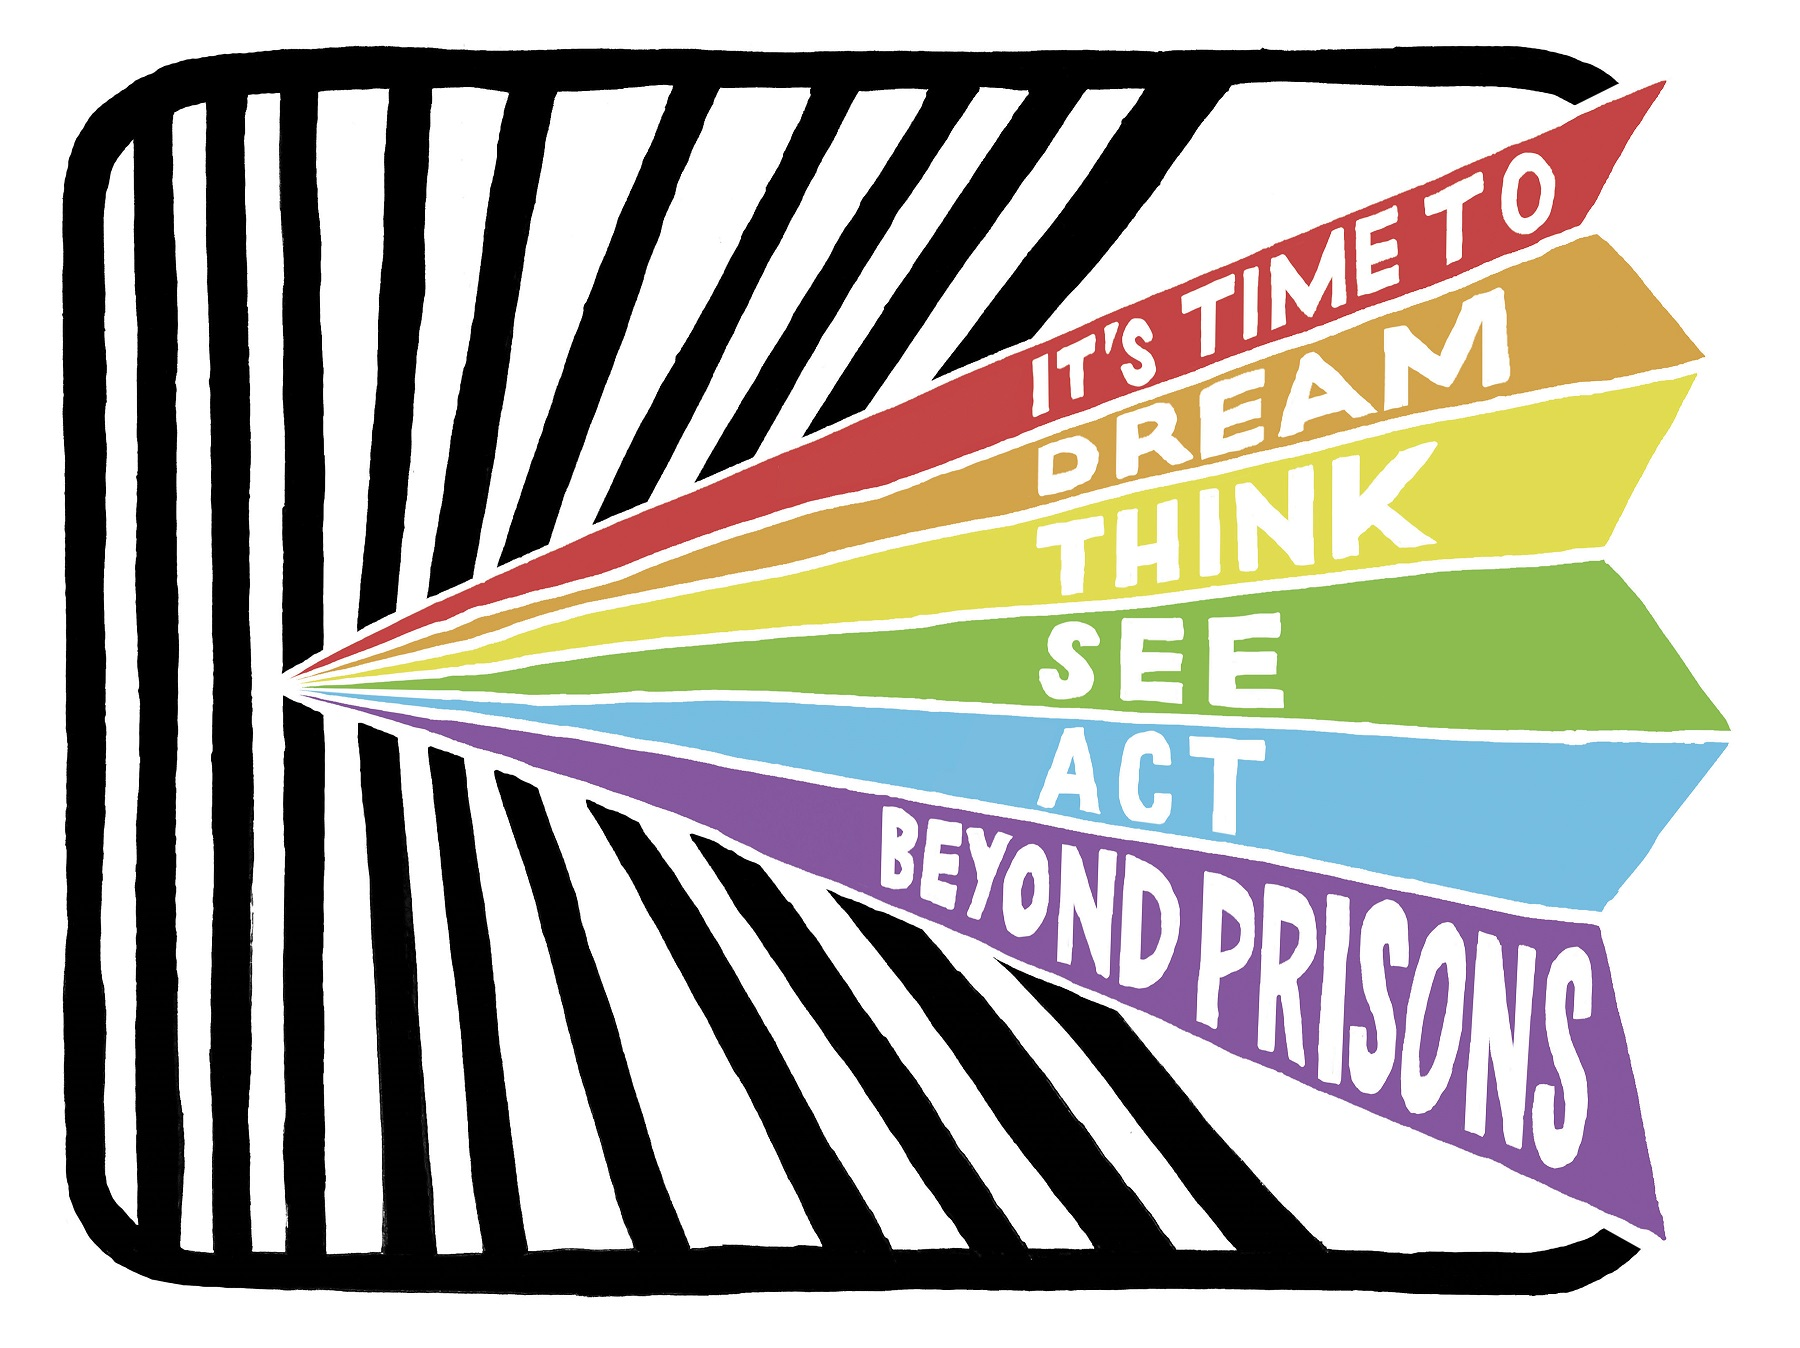 """Rainbow with text """"It's time to dream, think, see, act beyond prisons"""""""